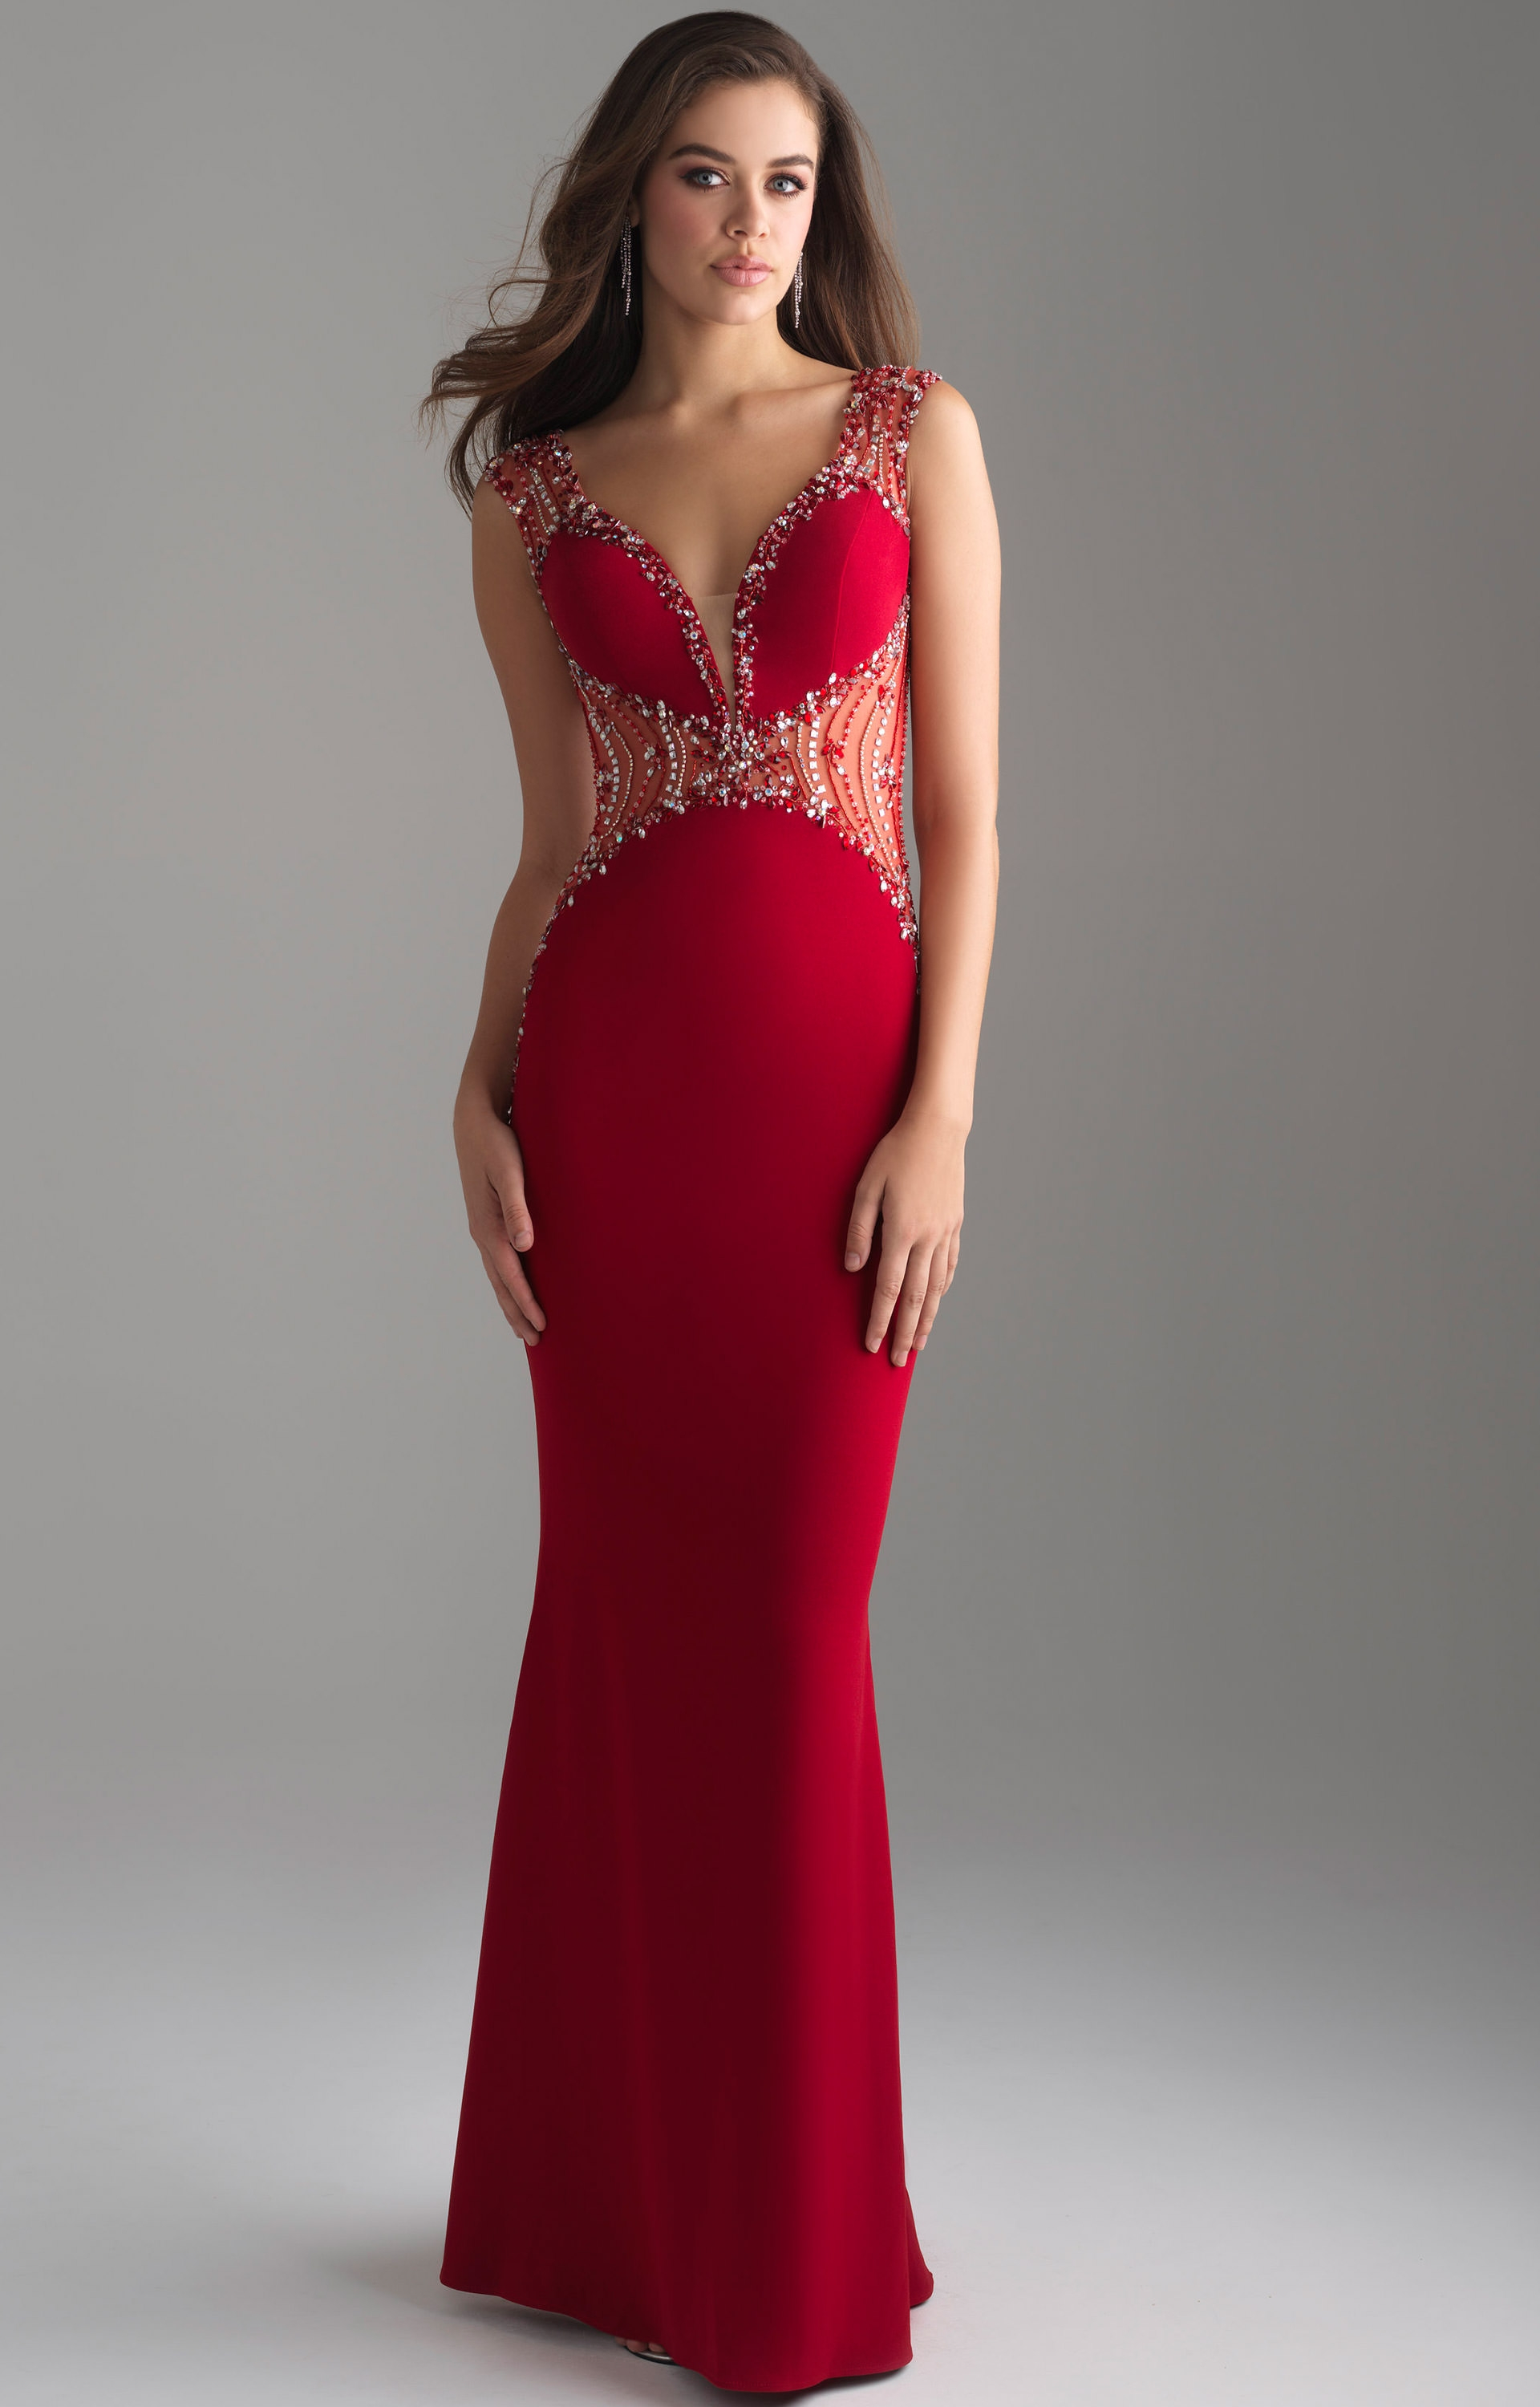 Madison James 18-696 - Long Fitted Jersey V-Neck Prom Dress b63ee8e68